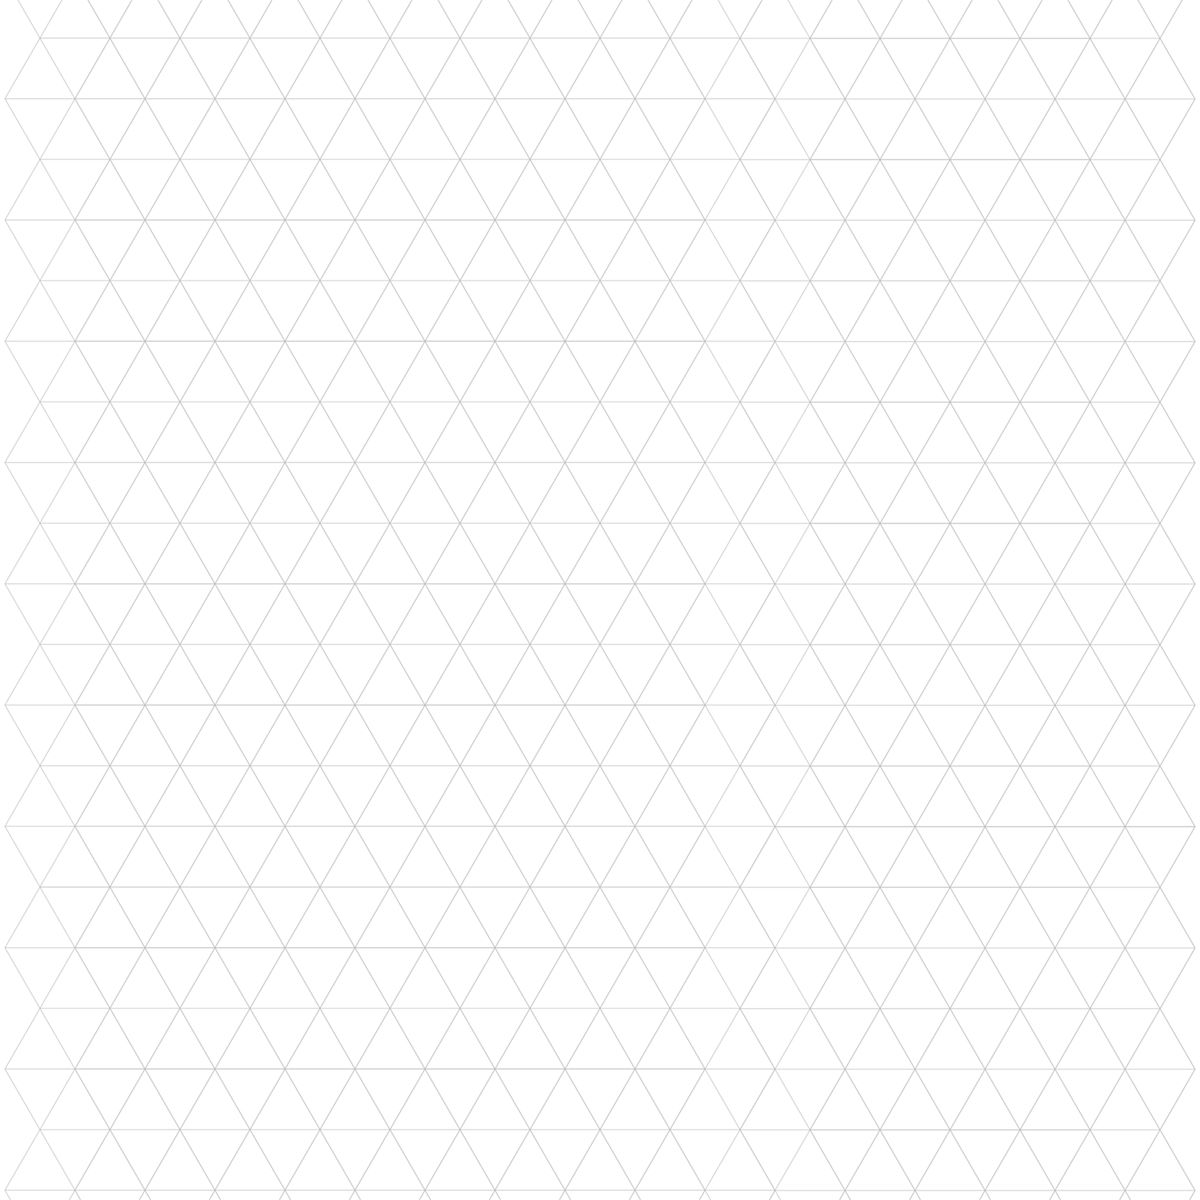 Free Graph Paper For Your TriangleBased Quilting Design Needs